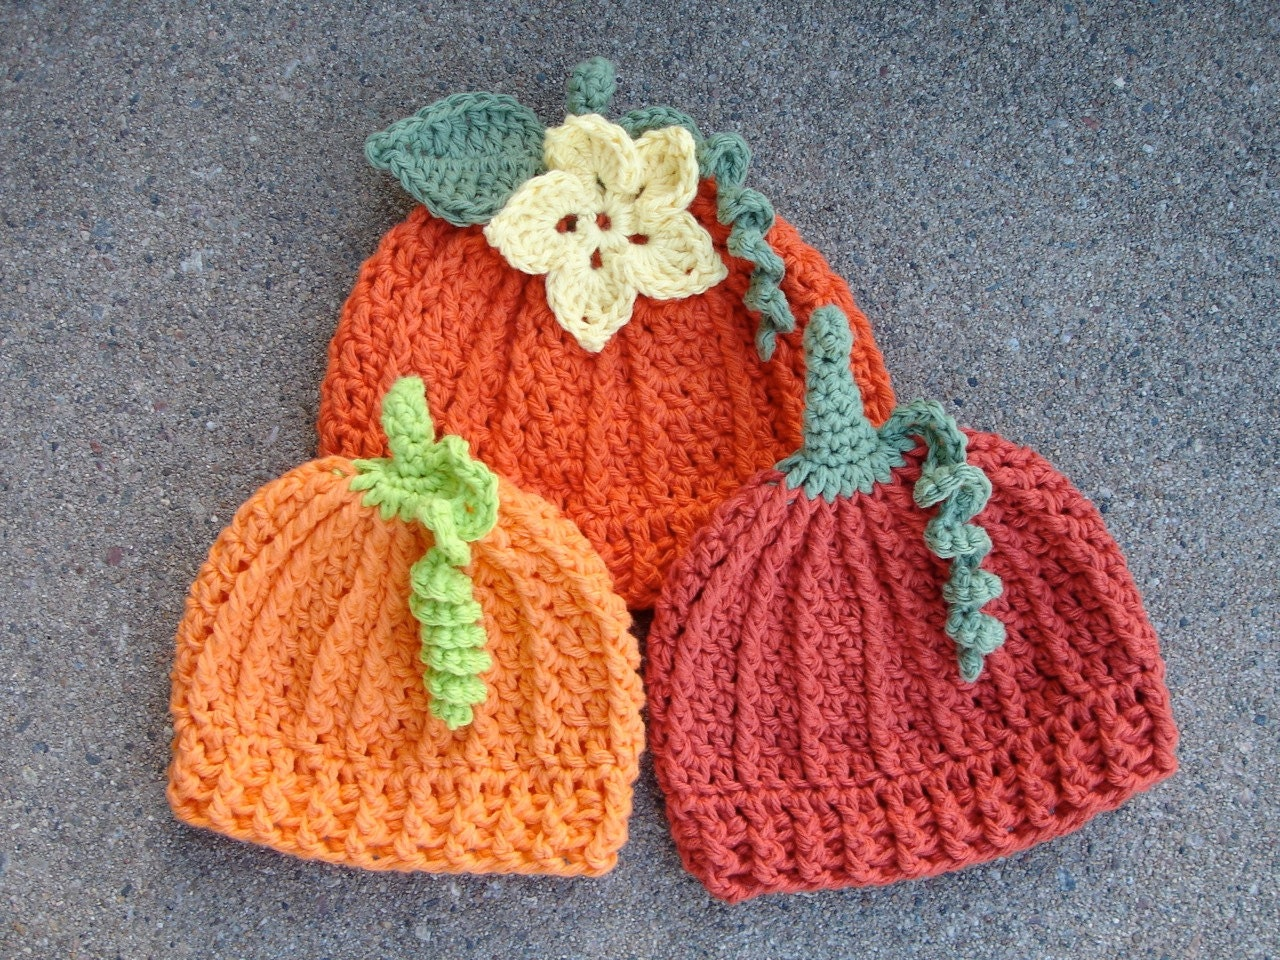 Free Crochet Patterns For Baby Halloween Hats : Crochet Pattern for Pumpkin Beanie Hat 5 sizes baby to